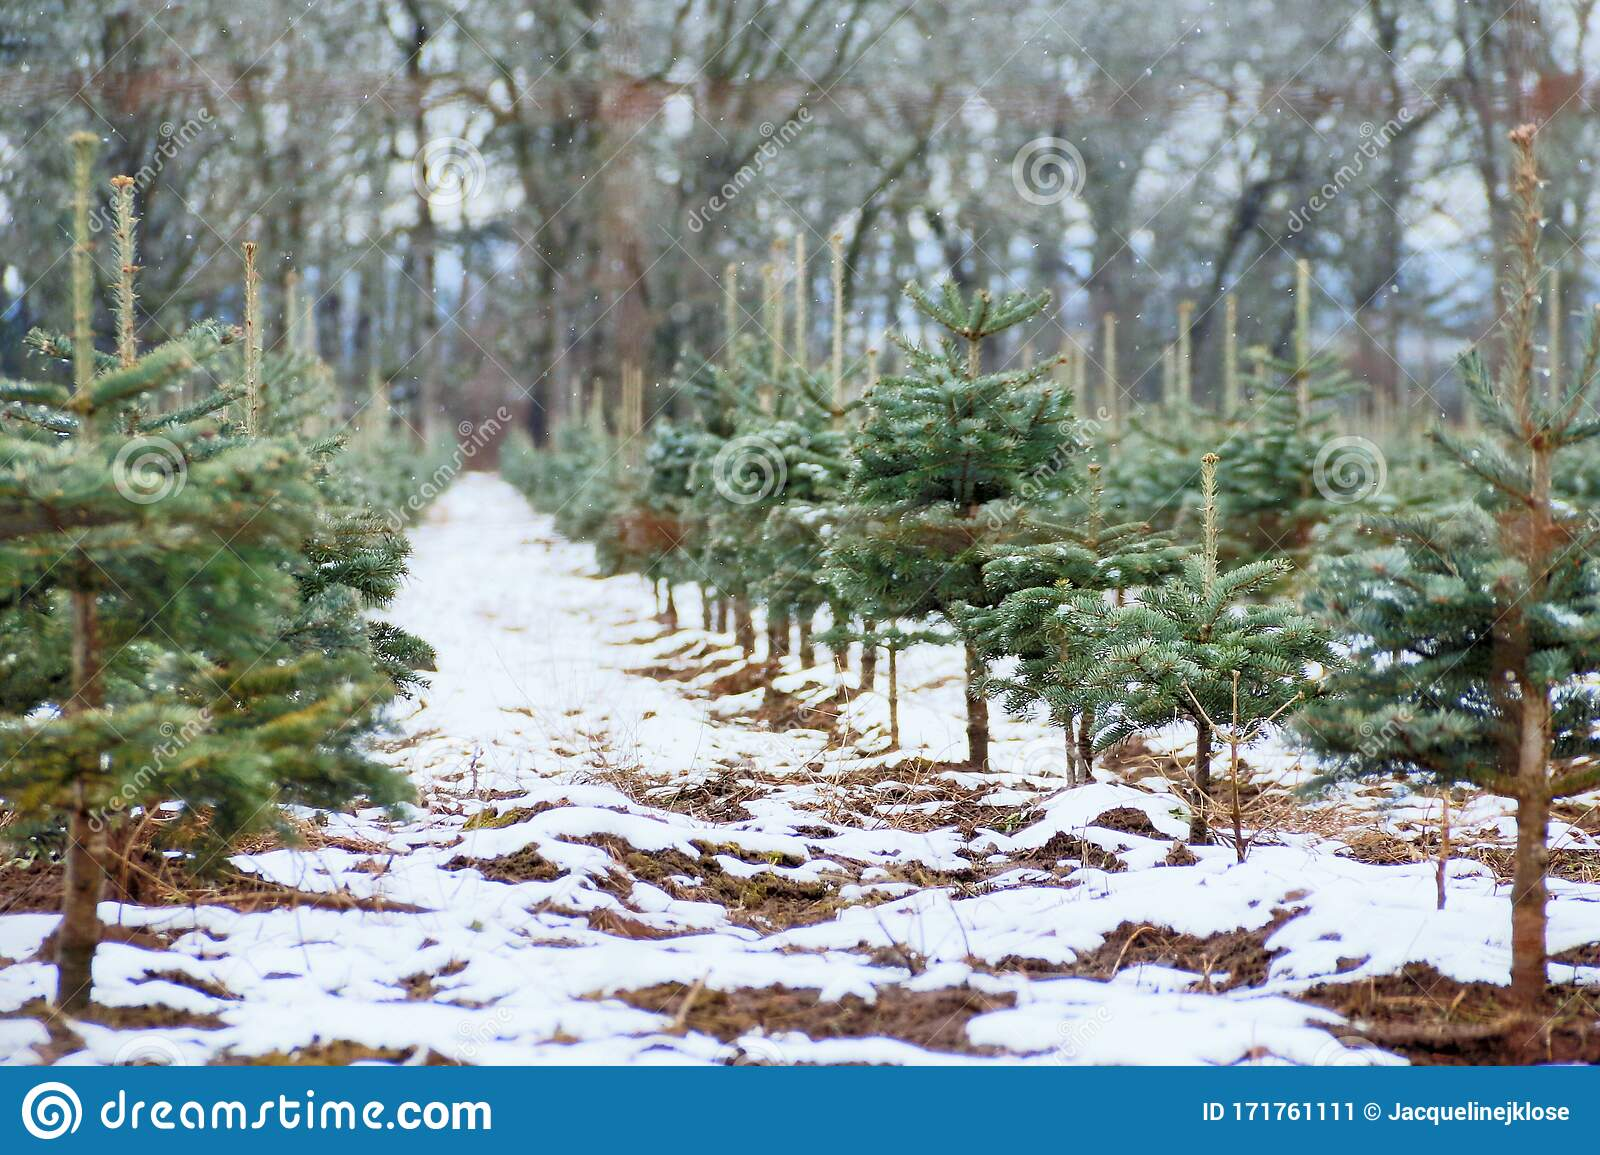 Vintage Style Image Of Snow Dusted Christmas Tree Farm Brown Soil Peaking Through Woods And Sky In Background Daytime Willame Stock Image Image Of Hills Pseudotsuga 171761111